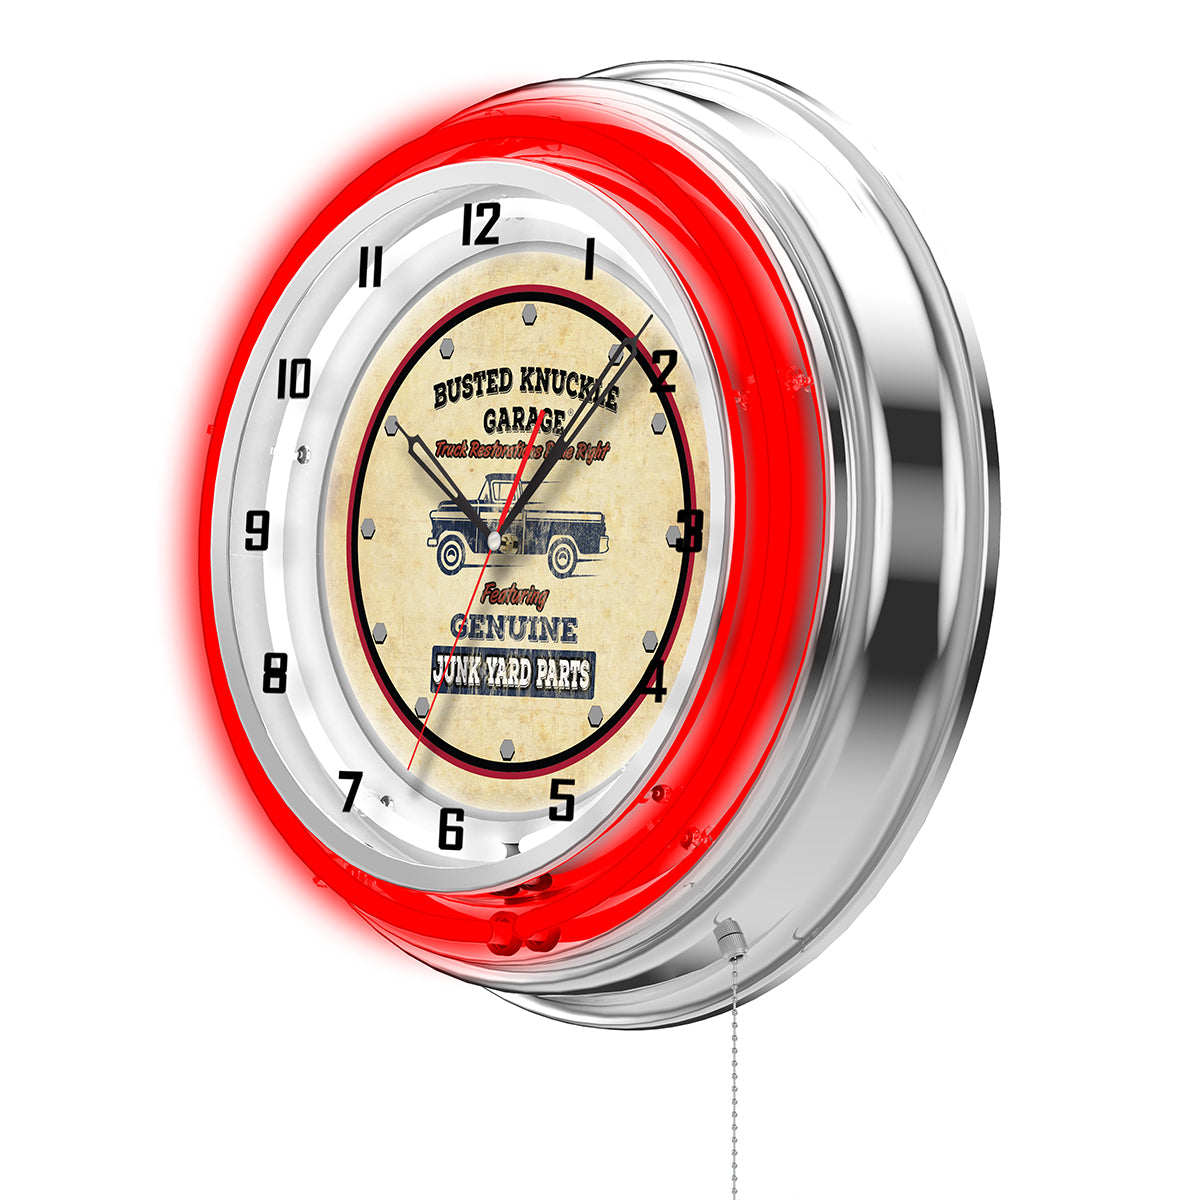 Genuine Junkyard Parts Clock - Red Neon